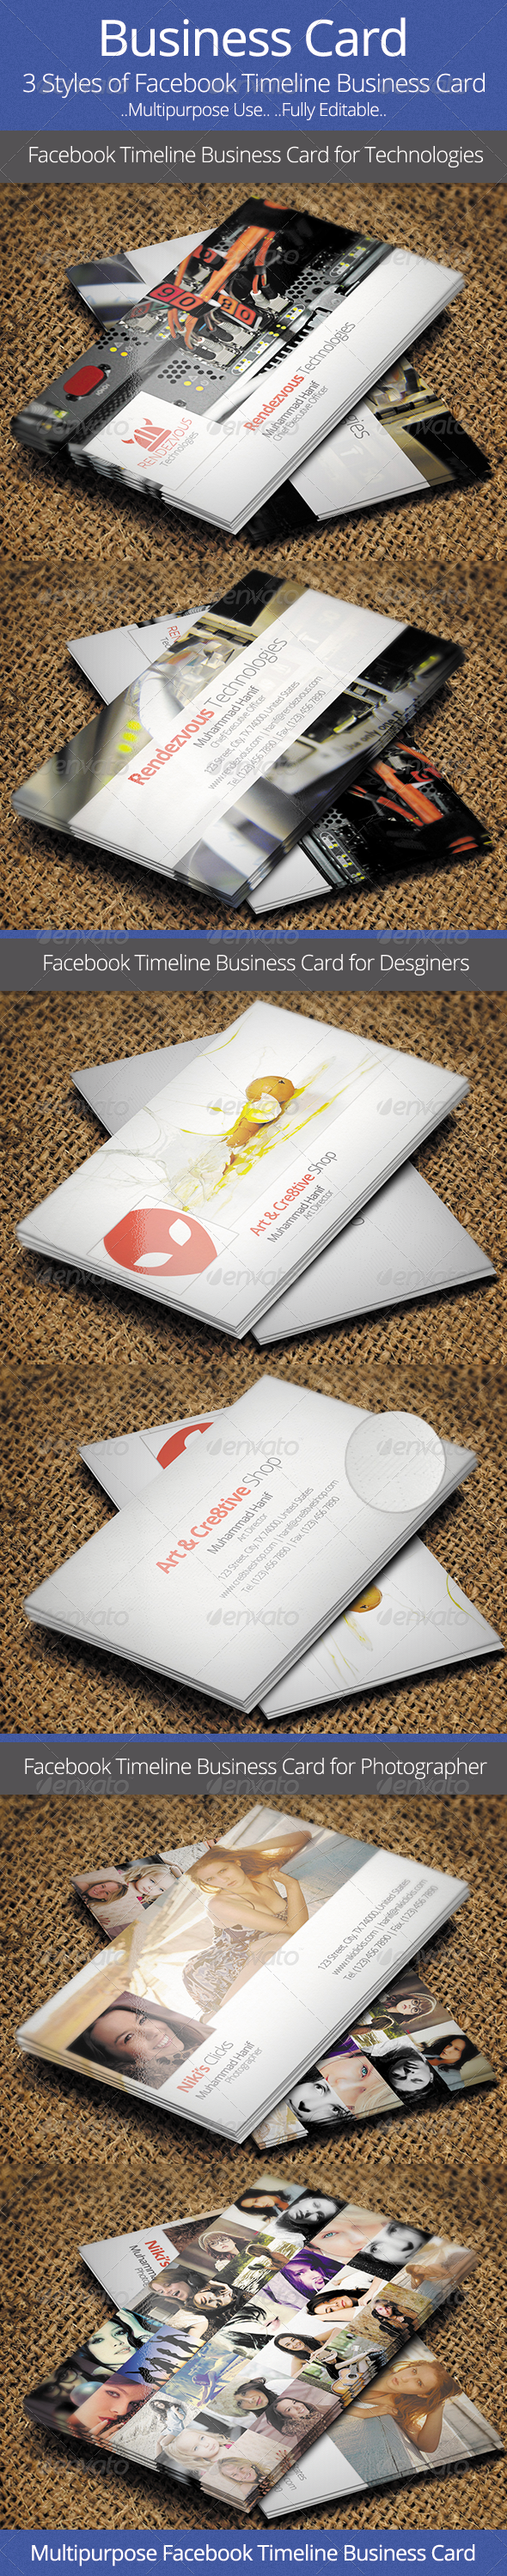 Facebook Timeline Business Card - Print Templates